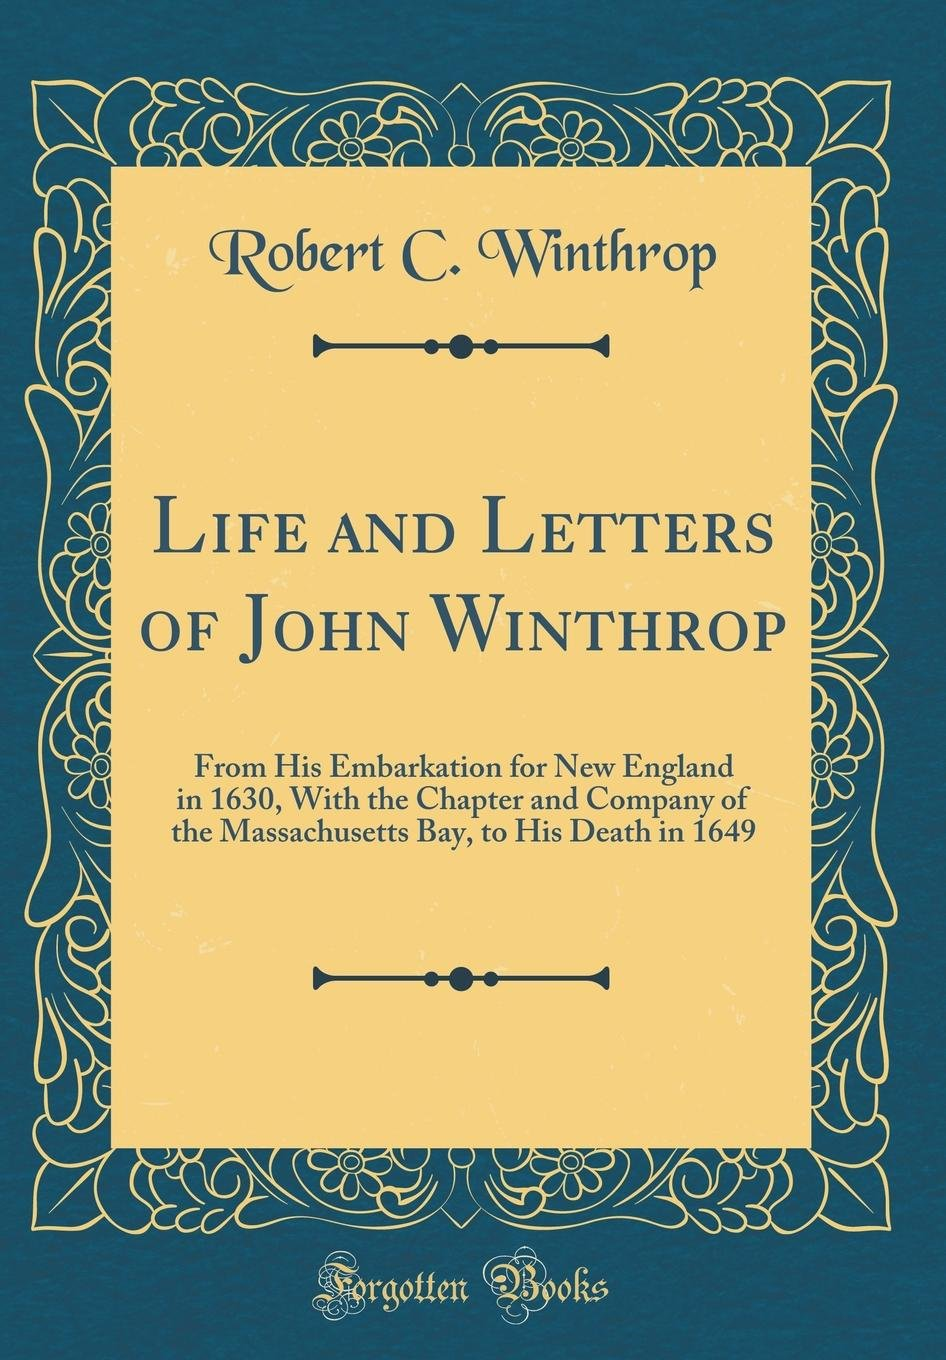 Life and Letters of John Winthrop: From His Embarkation for New England in 1630, With the Chapter and Company of the Massachusetts Bay, to His Death in 1649 (Classic Reprint)